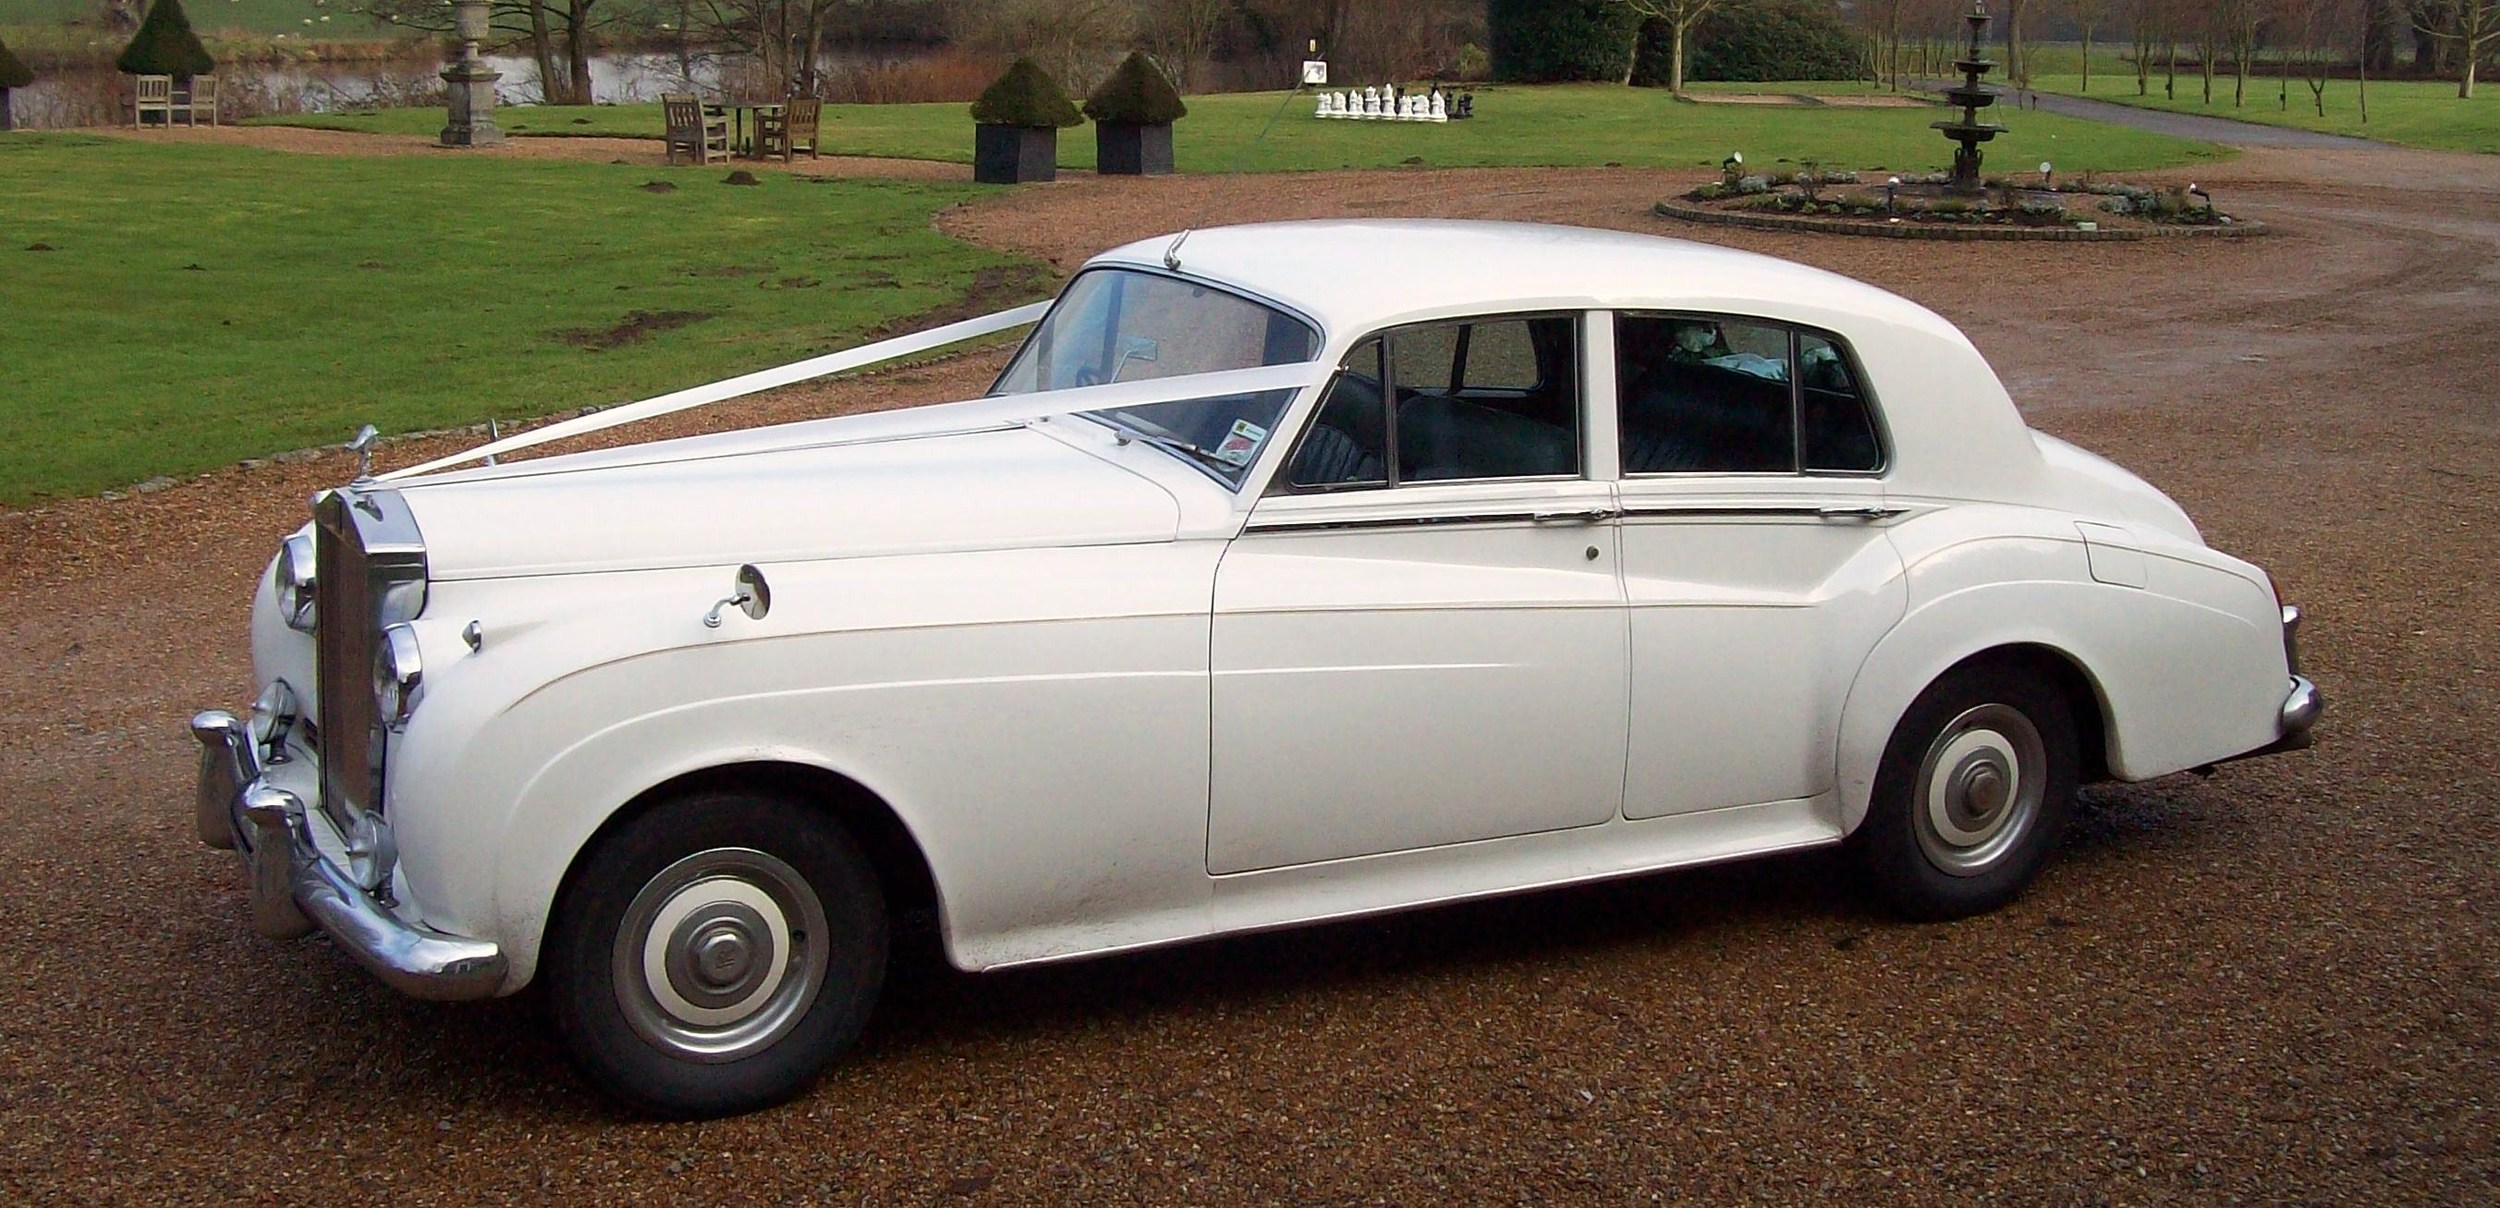 White Rolls Royce silver Cloud at Chilston Park wedding.